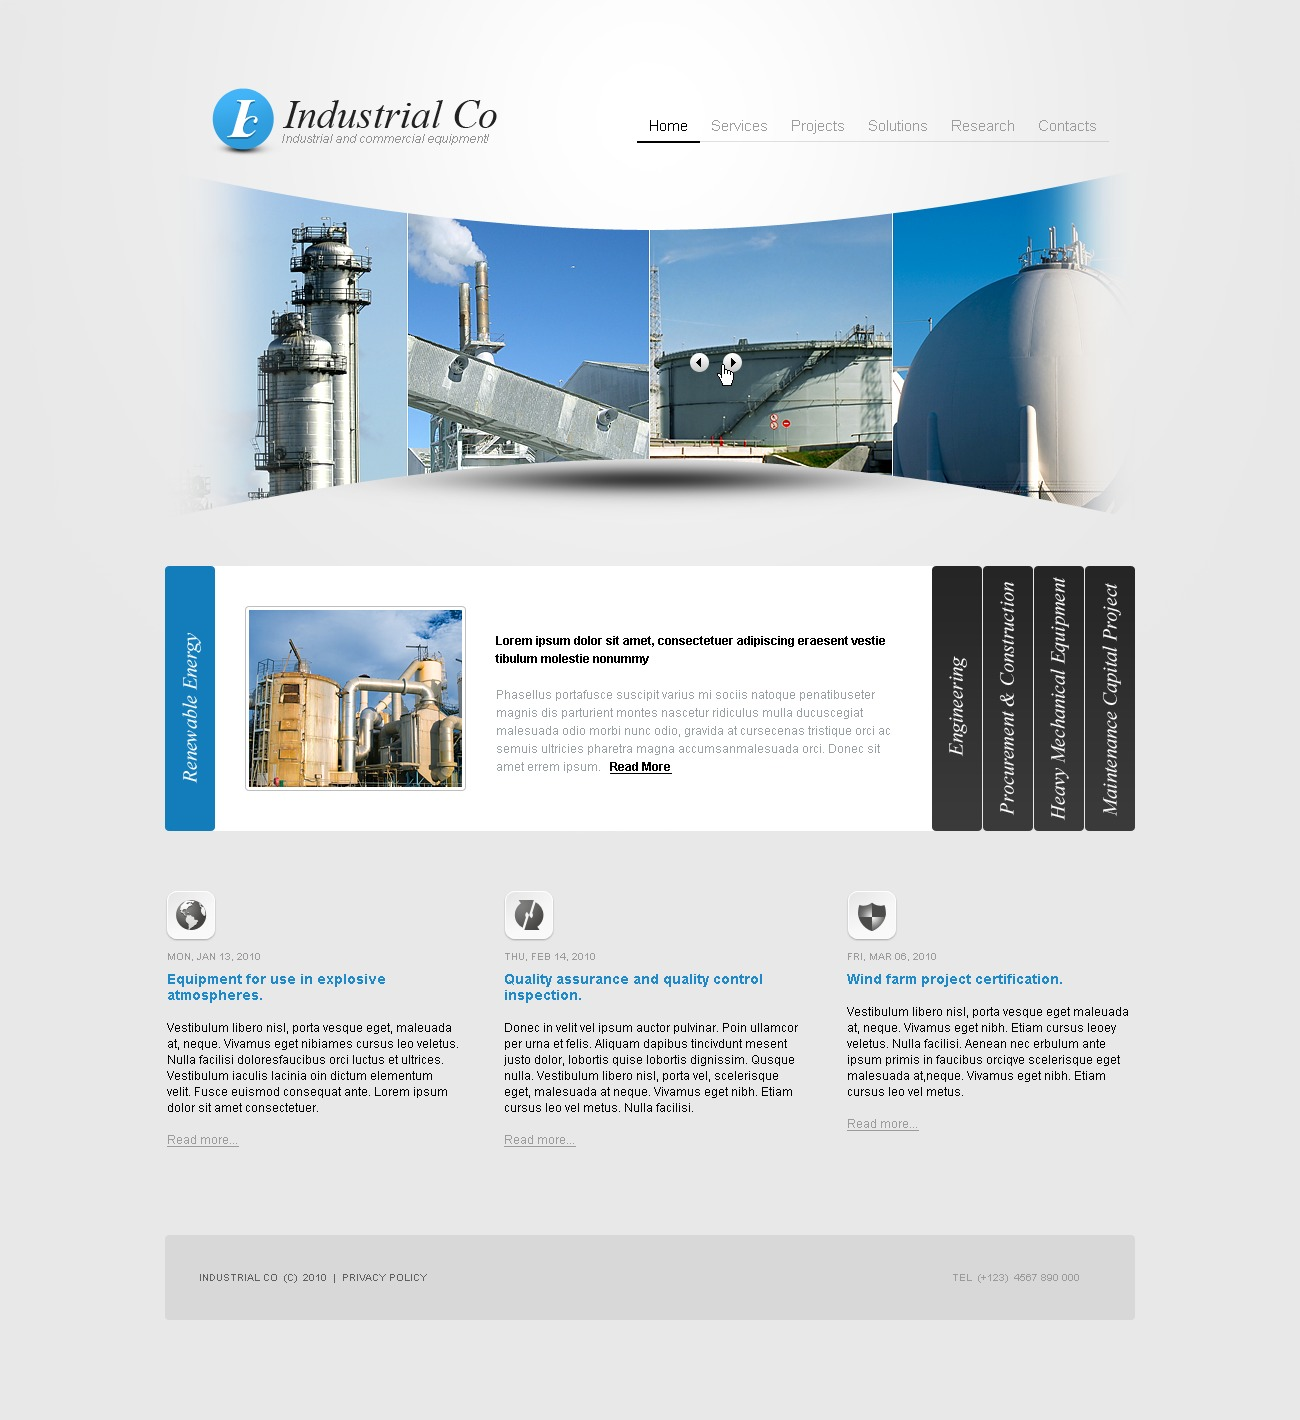 The Industrial Company PSD Design 54187, one of the best PSD templates of its kind (industrial, flash 8, wide, jquery), also known as industrial company PSD template, construction PSD template, architecture PSD template, buildings PSD template, technology PSD template, engines PSD template, innovation PSD template, skyscrapers PSD template, projects PSD template, constructions PSD template, houses PSD template, work PSD template, team PSD template, strategy PSD template, services PSD template, support PSD template, planning solutions PSD template, non-standard PSD template, creative ideas PSD template, catalog PSD template, windows PSD template, doors PSD template, equipment PSD template, car and related with industrial company, construction, architecture, buildings, technology, engines, innovation, skyscrapers, projects, constructions, houses, work, team, strategy, services, support, planning solutions, non-standard, creative ideas, catalog, windows, doors, equipment, car, etc.